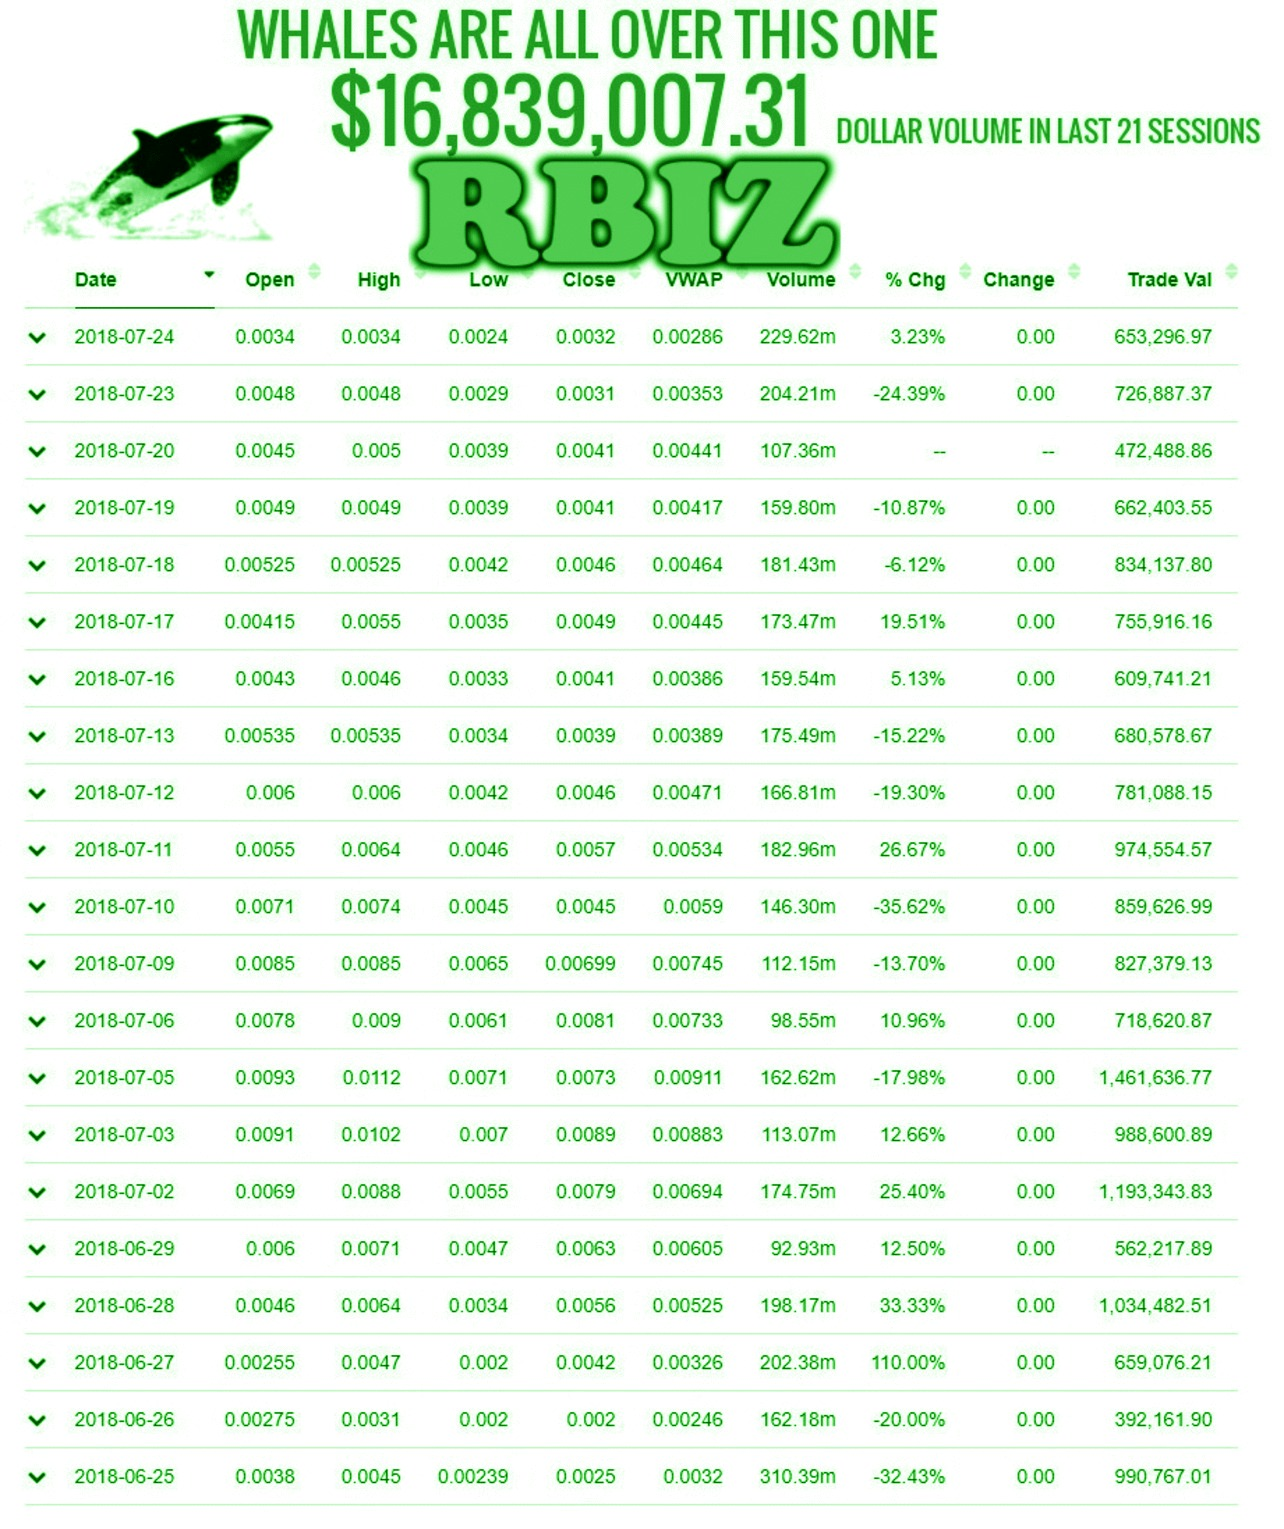 Penny Stock Quotes Real Time: RealBiz Media Group Inc. (RBIZ) Stock Message Board